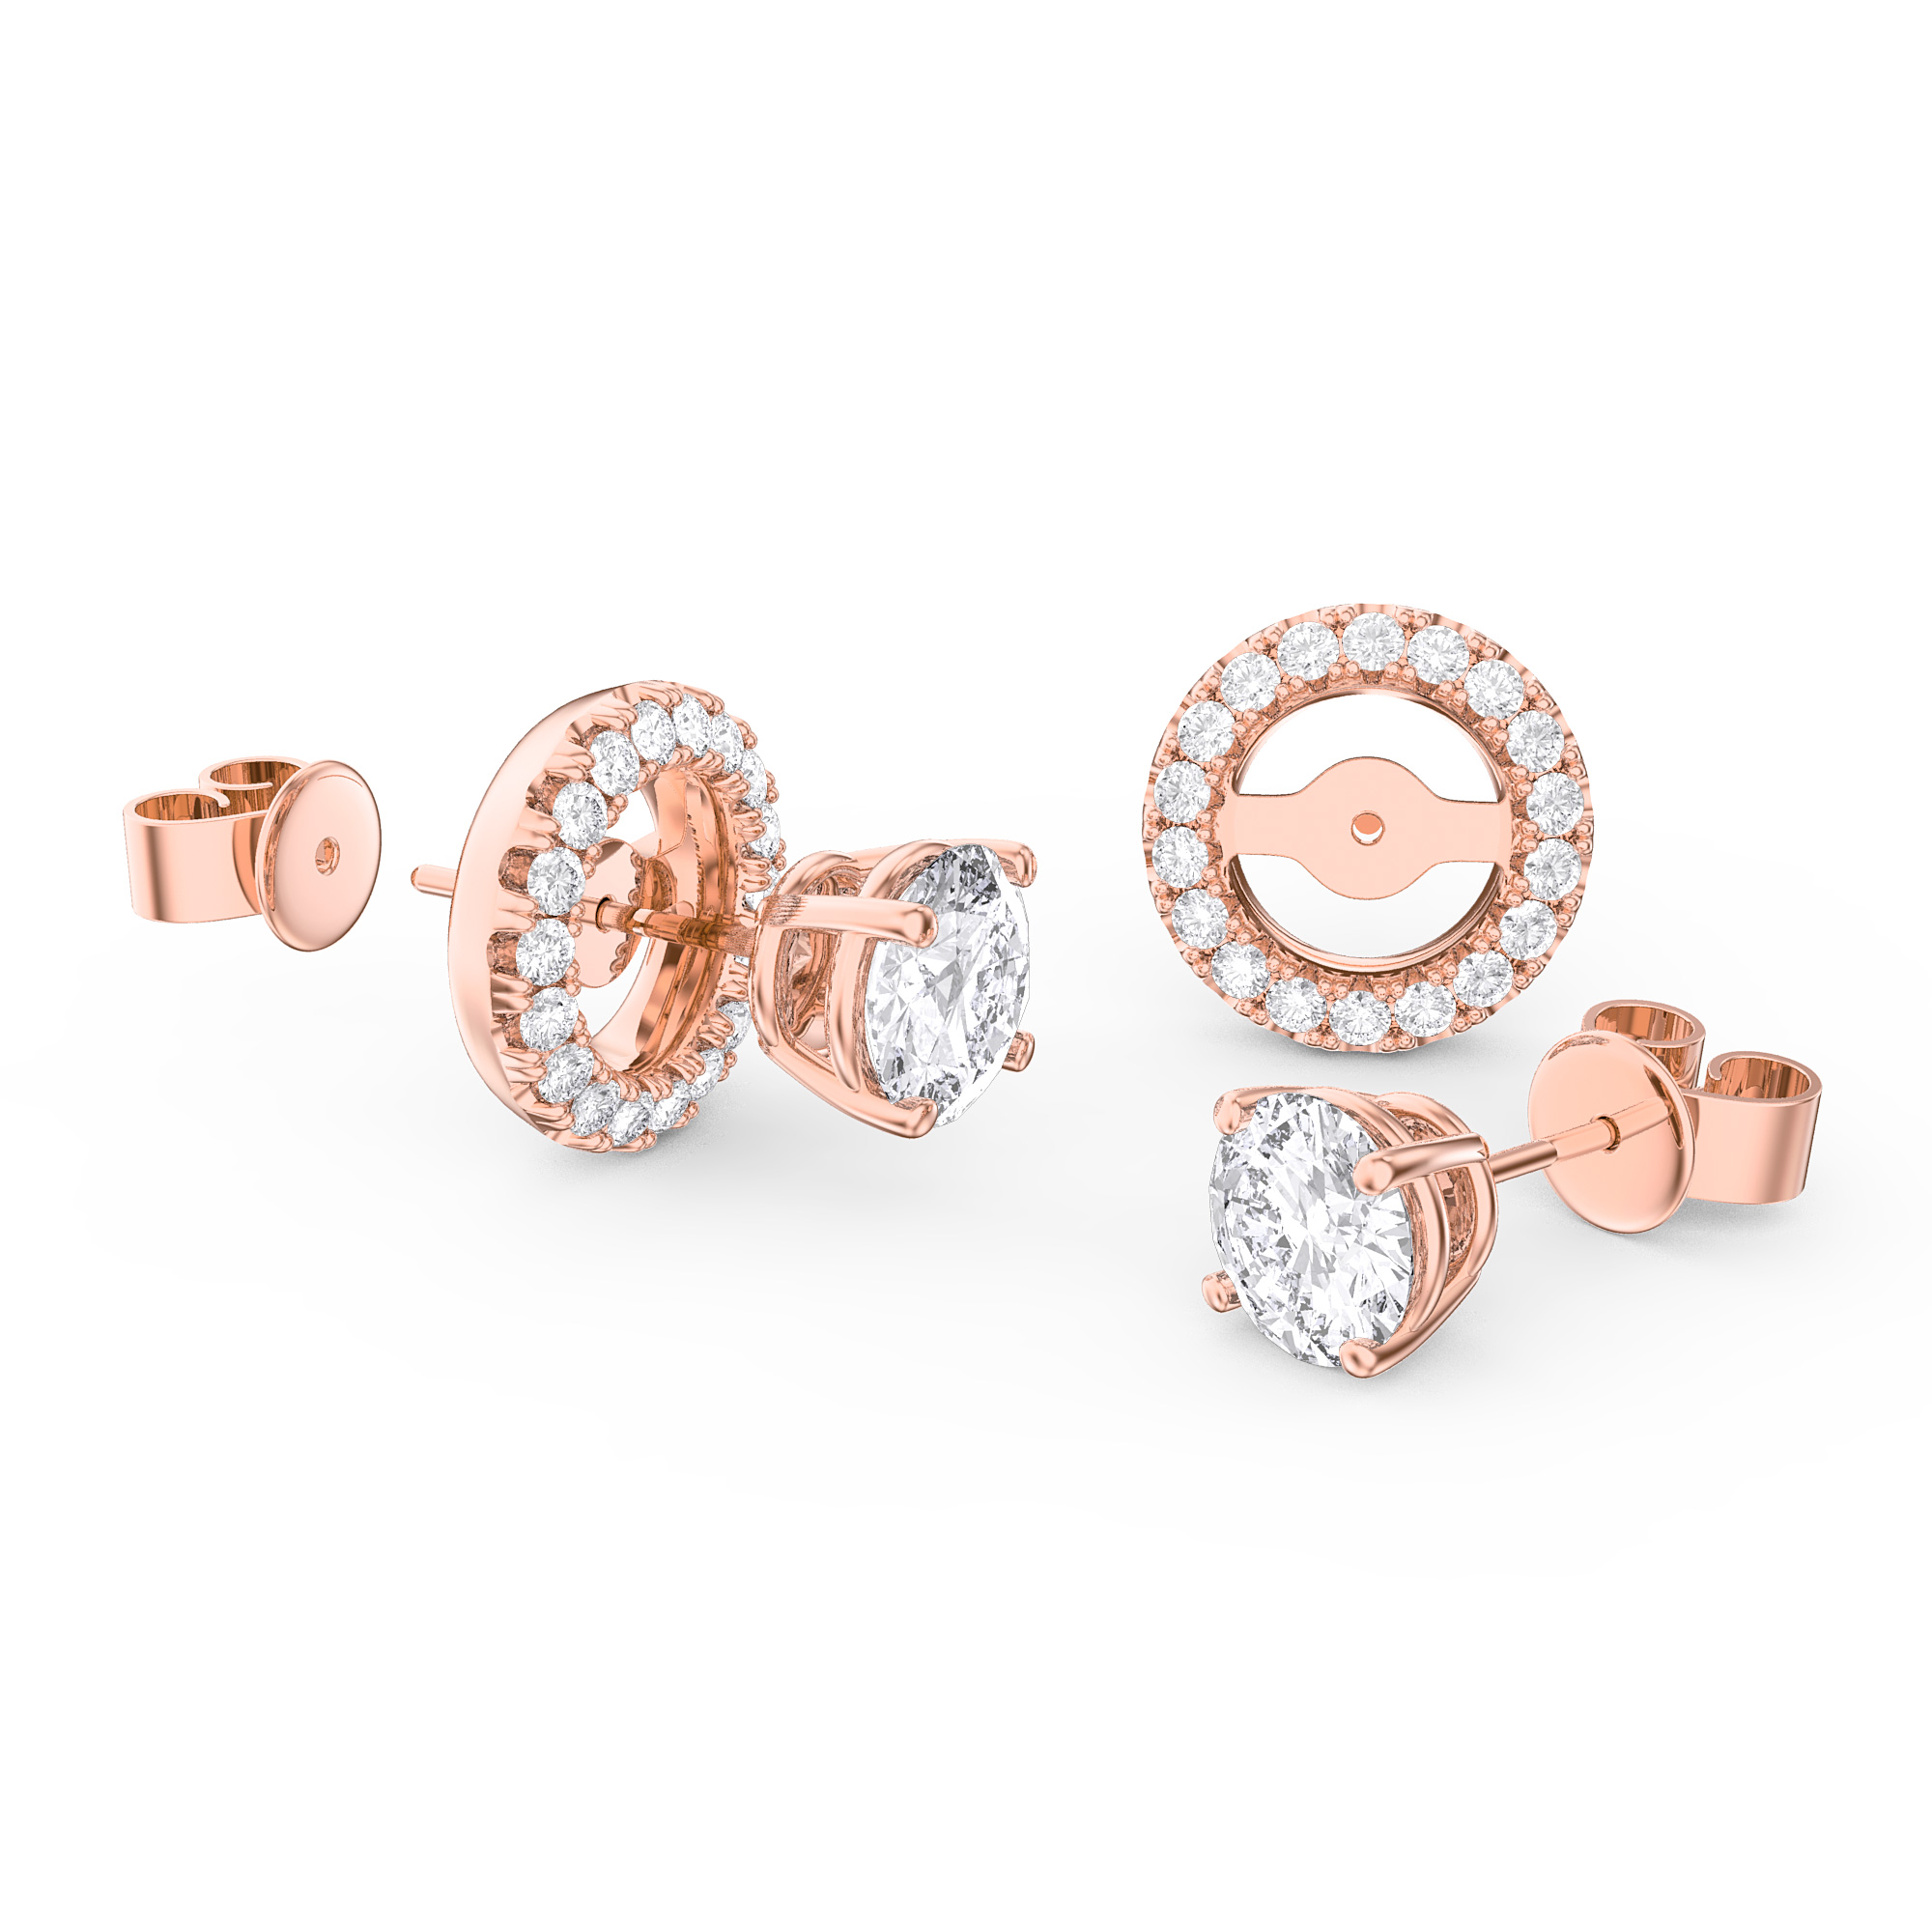 diamond classic blog the for setting ritani earring is com style best stud which earrings timeless jewelry